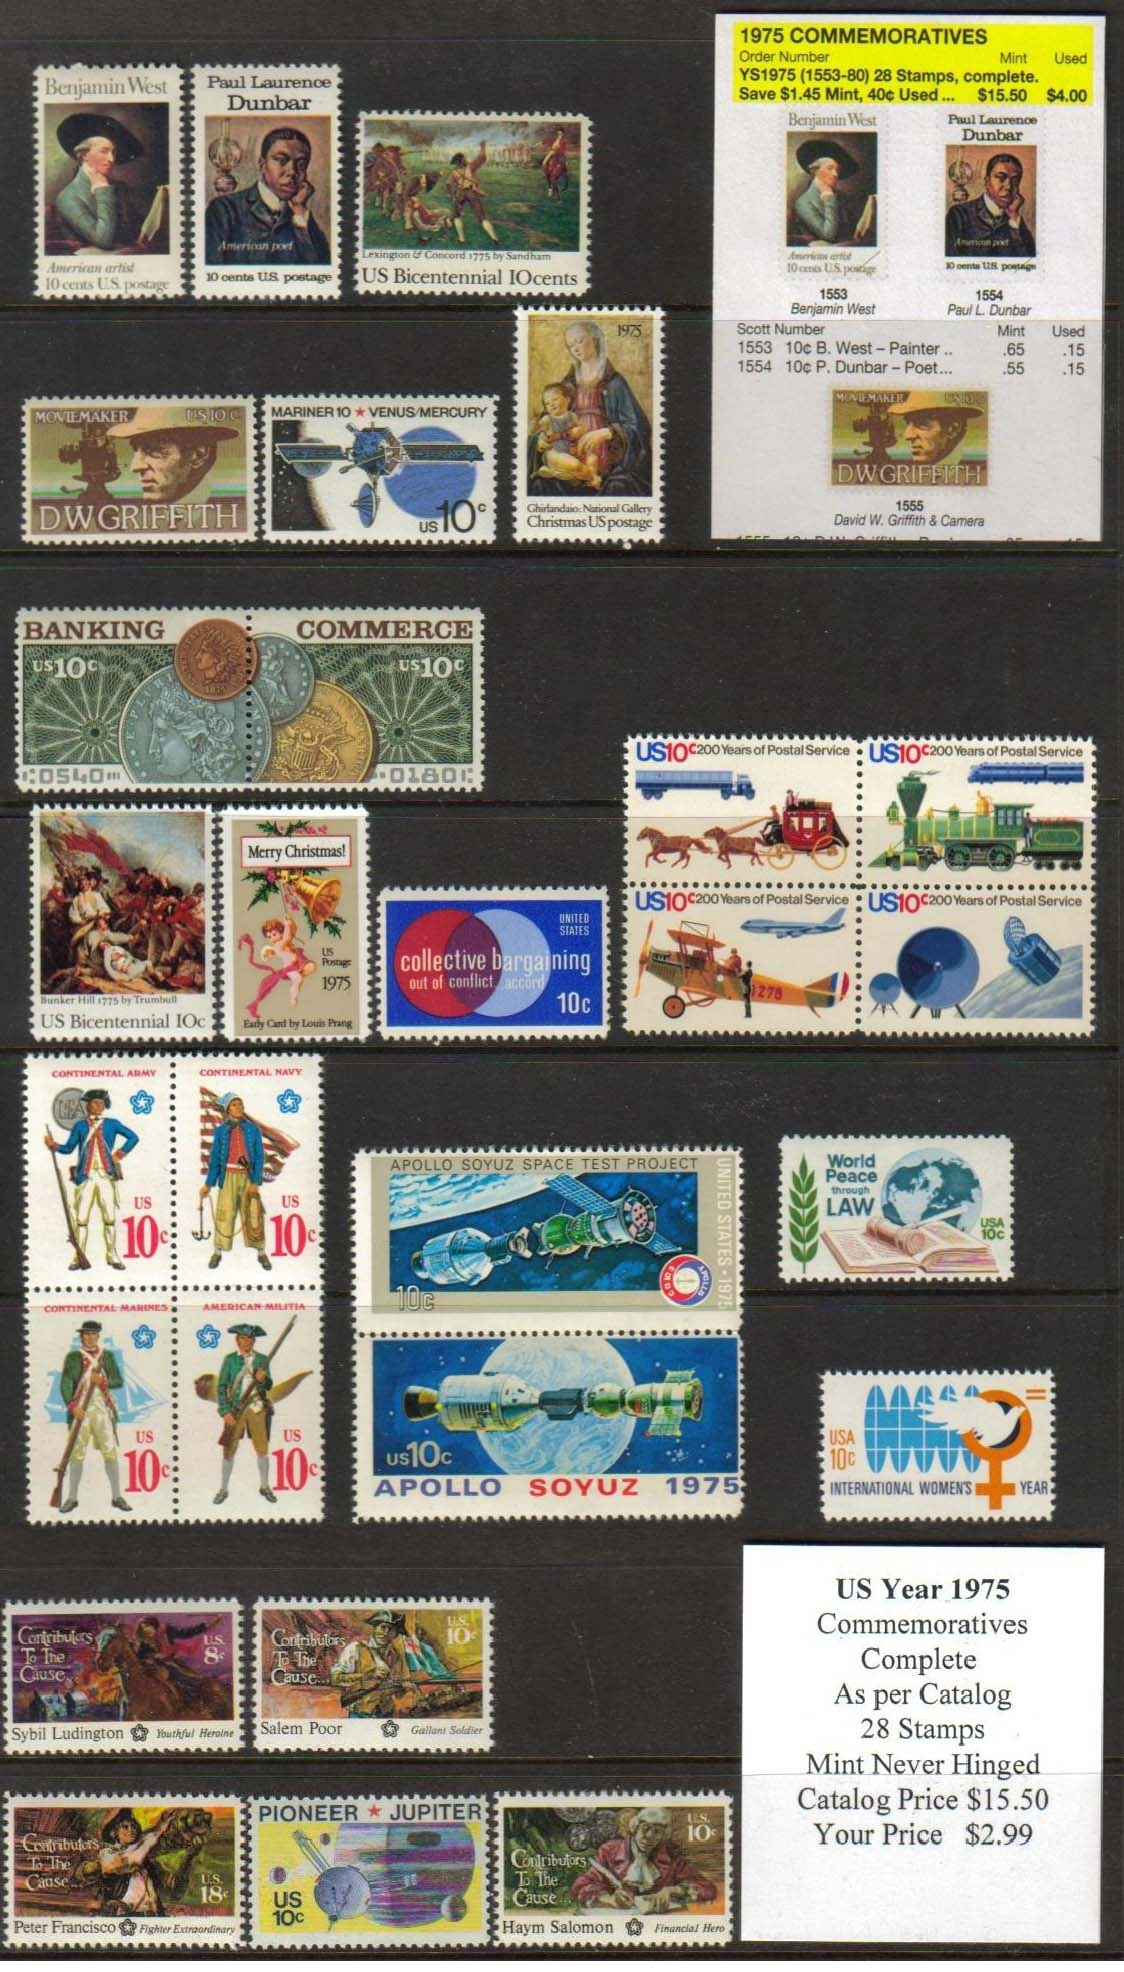 1975 COMMEMORATIVES, 28 STAMPS